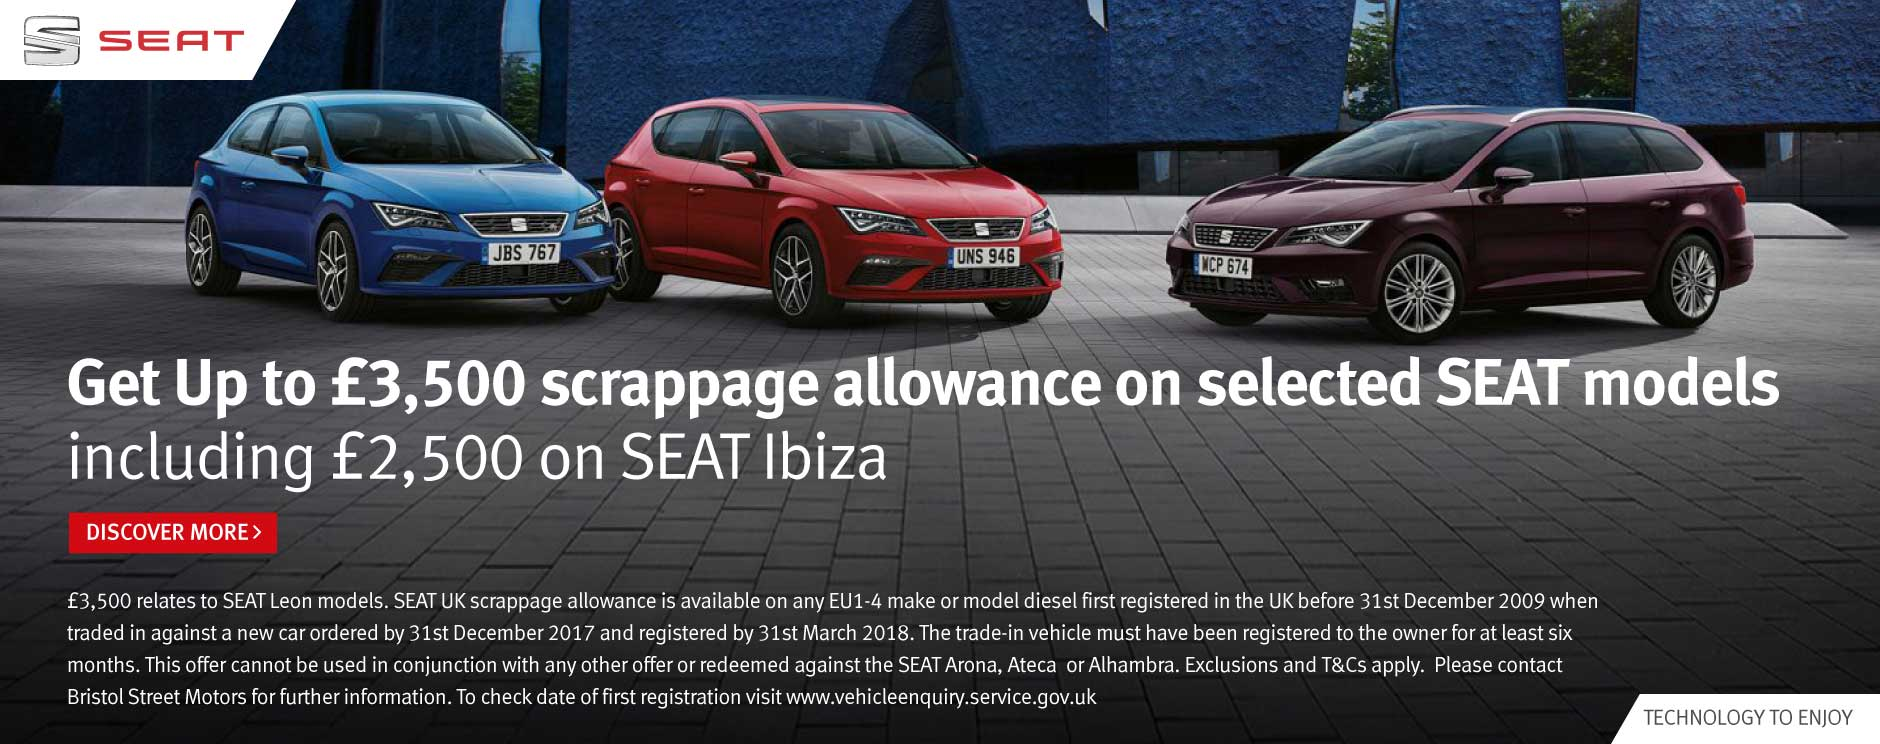 SEAT Scrappage Banner